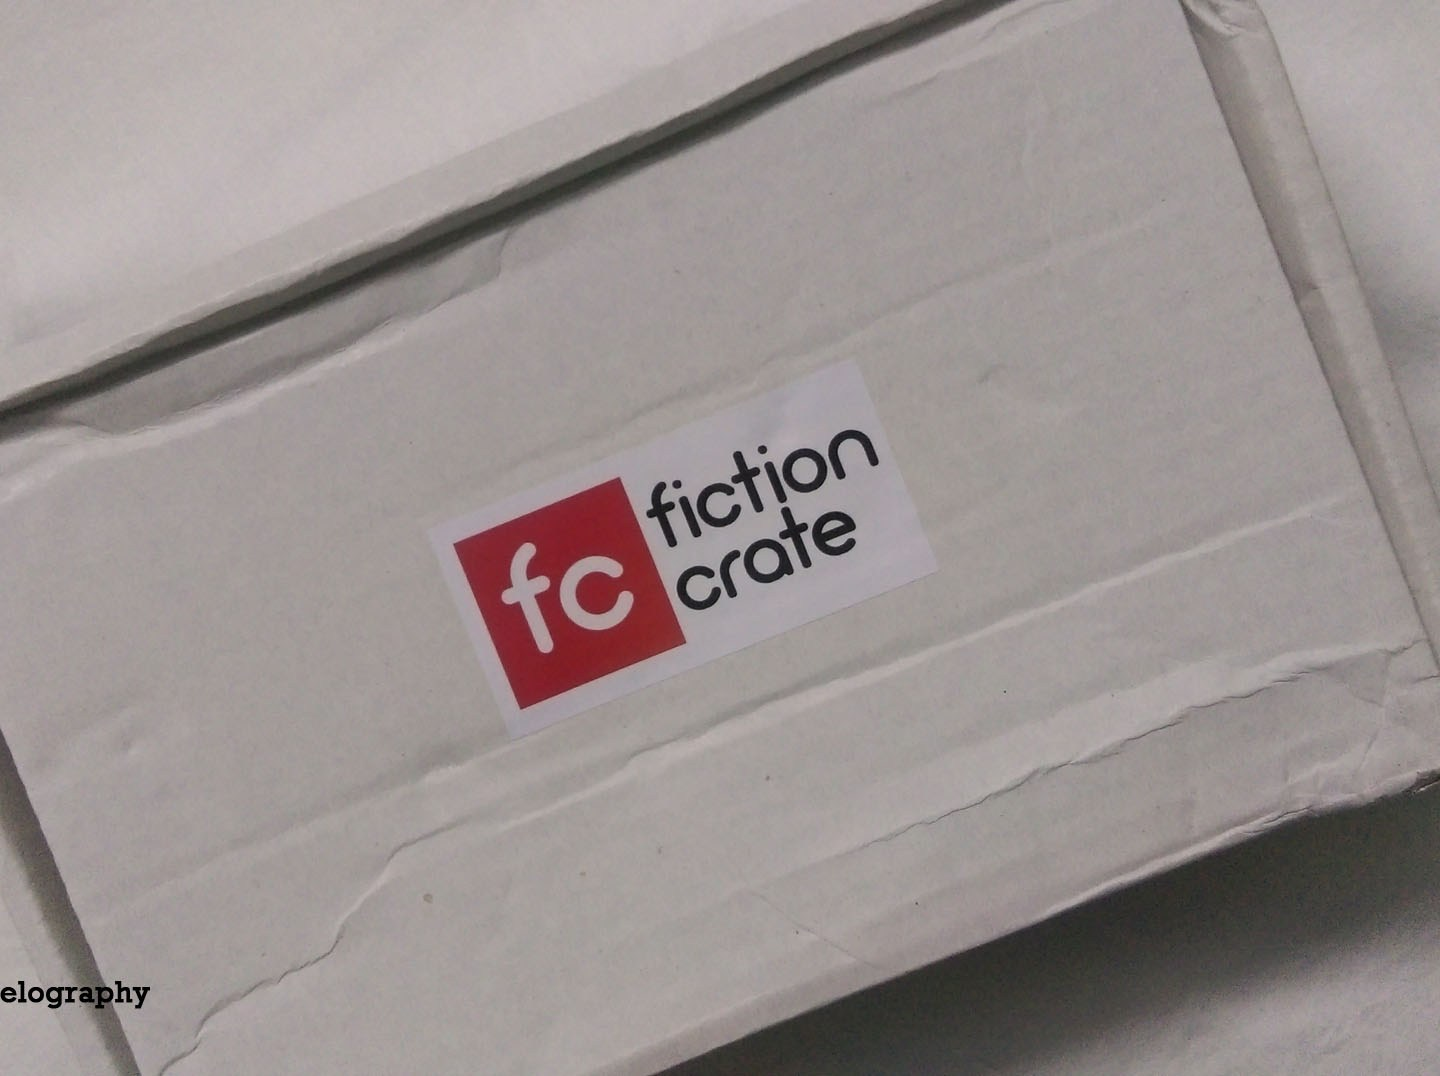 Fictioncarte – Indian Book Subscription Box